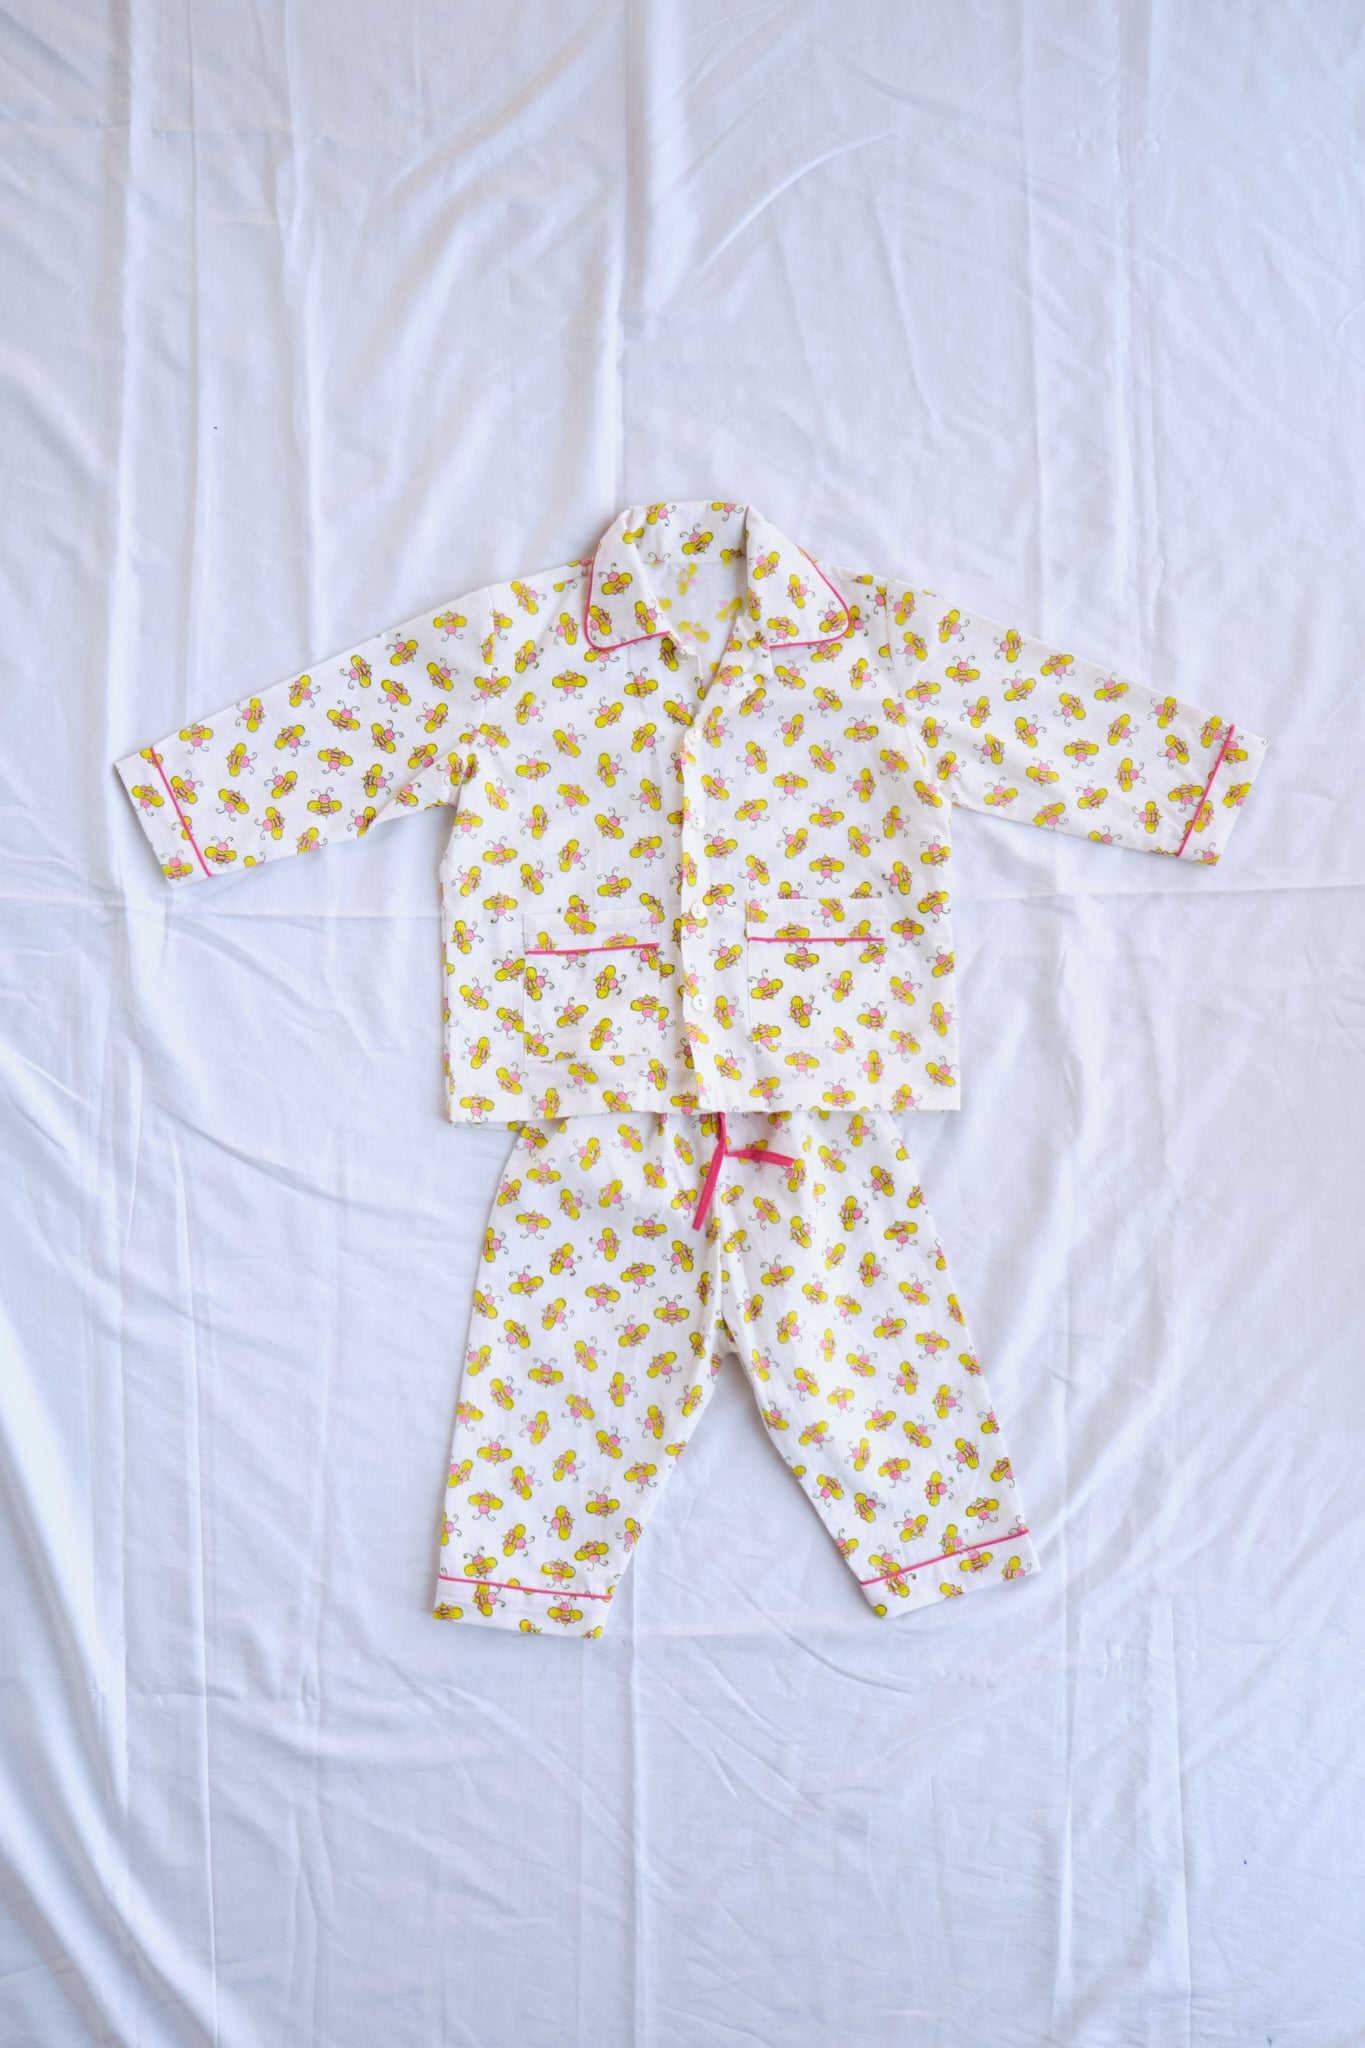 HONEYBEE PJ SET (UNISEX)